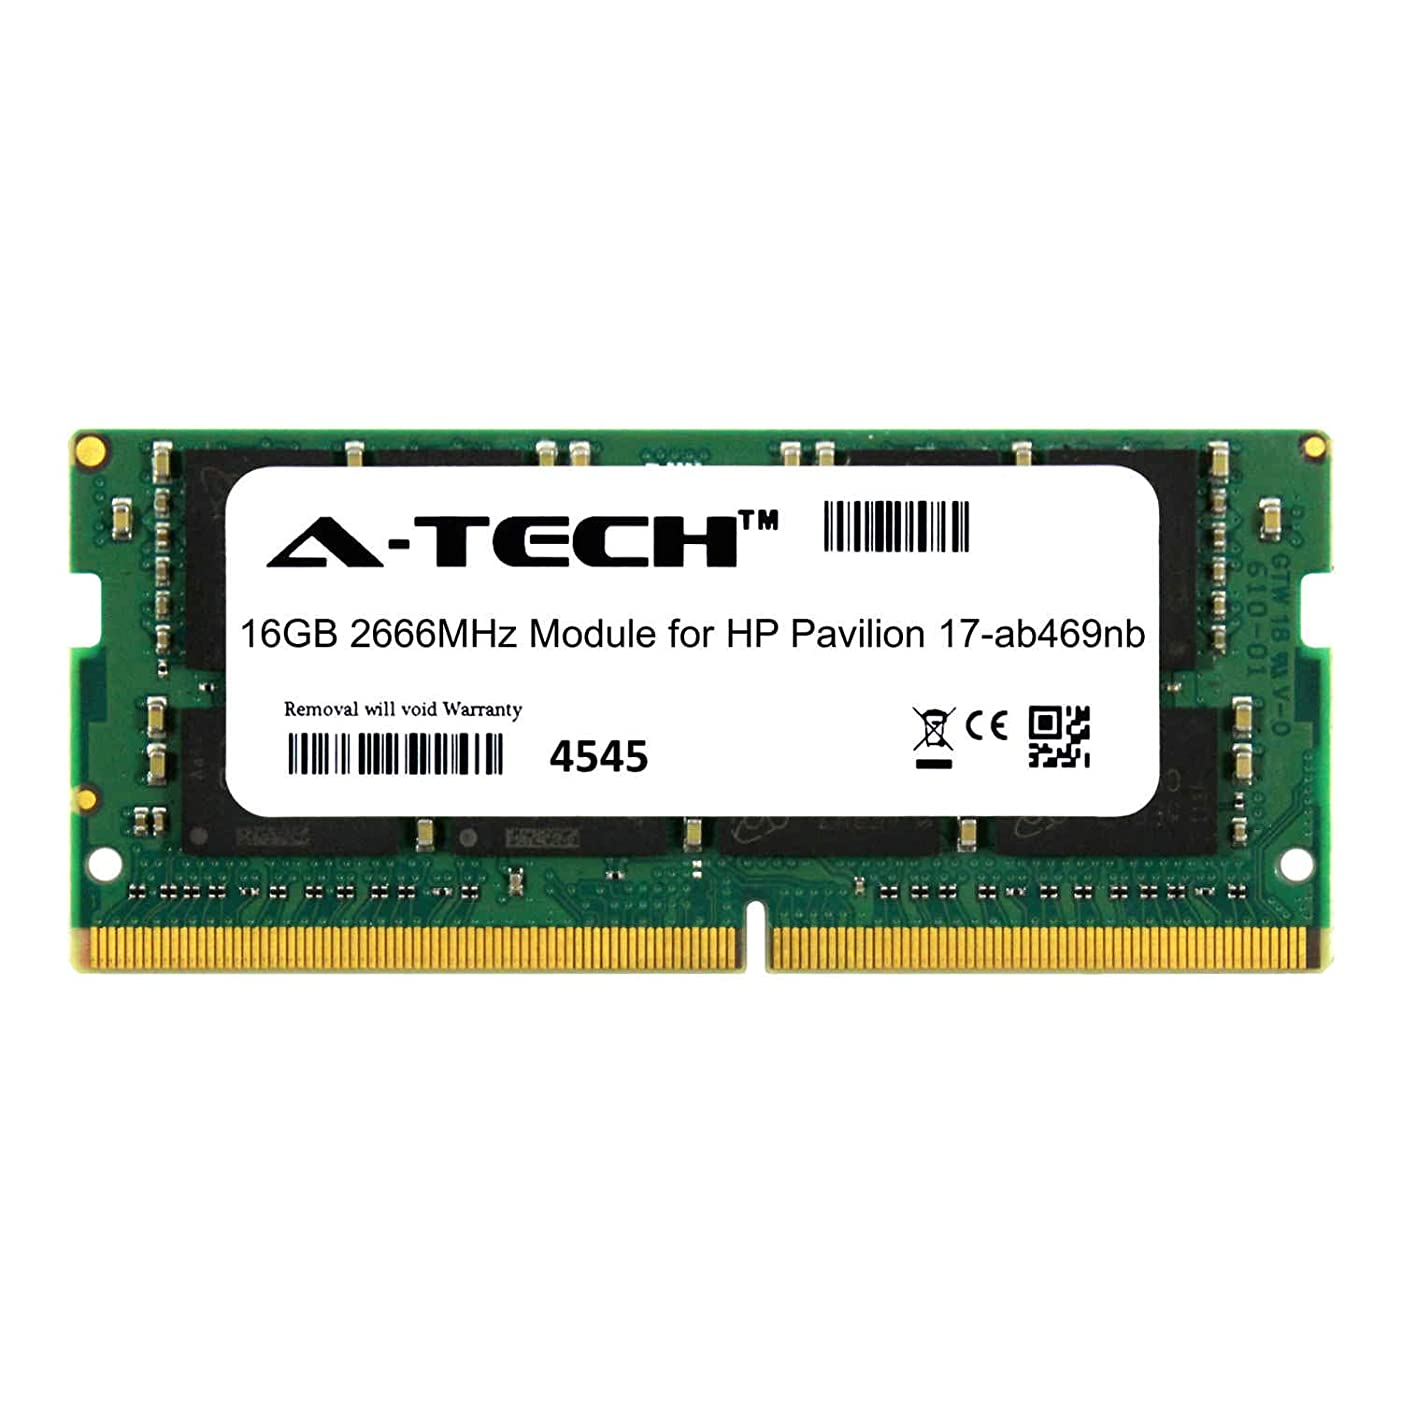 A-Tech 16GB Module for HP Pavilion 17-ab469nb Laptop & Notebook Compatible DDR4 2666Mhz Memory Ram (ATMS310616A25832X1)